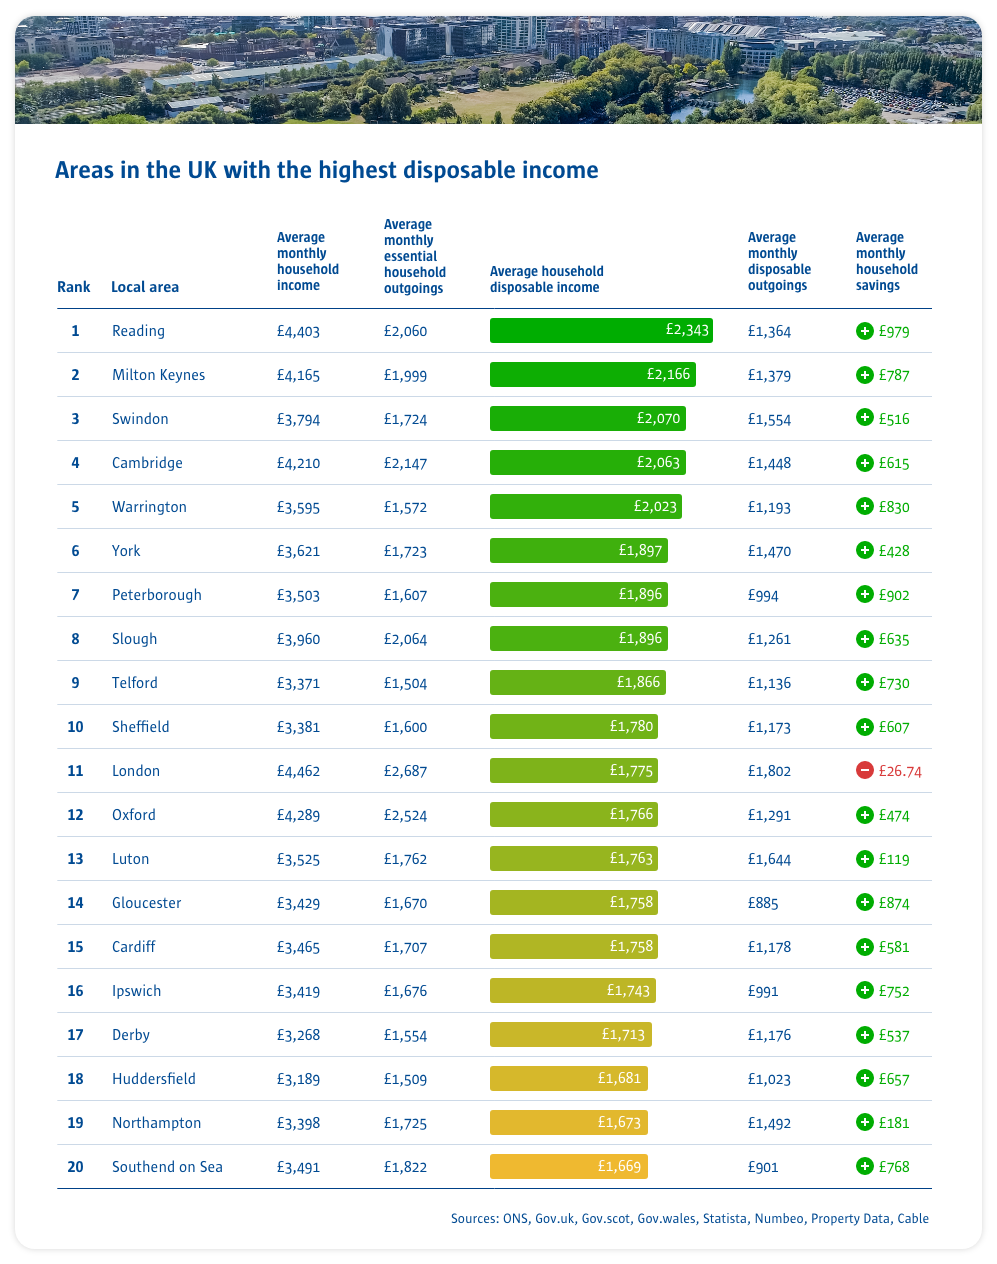 areas in the UK with the highest disposable income